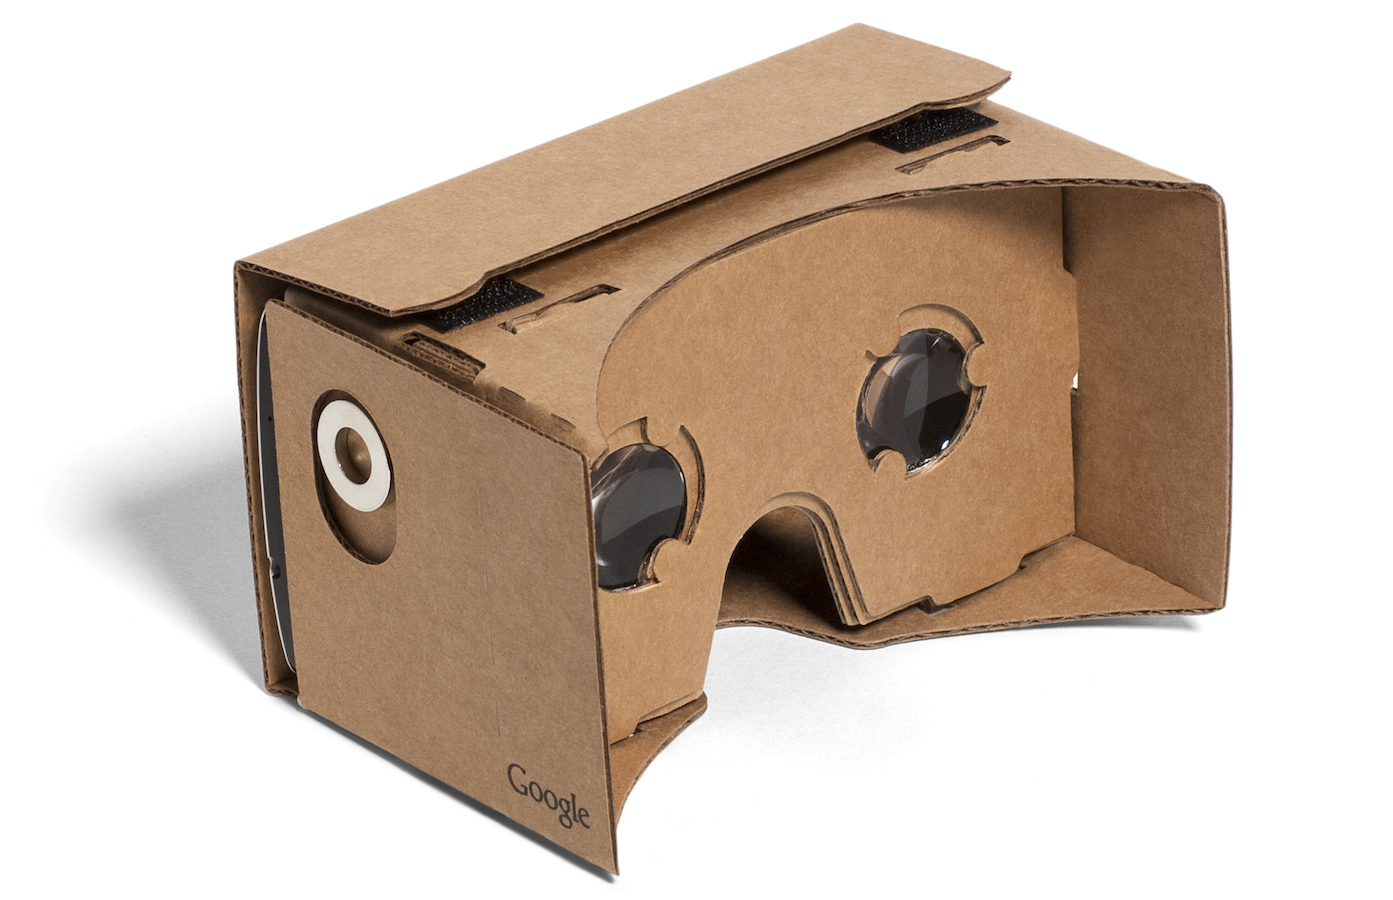 Google Cardboard, Stereoscopic Phones, and the Future of Augmented Reality